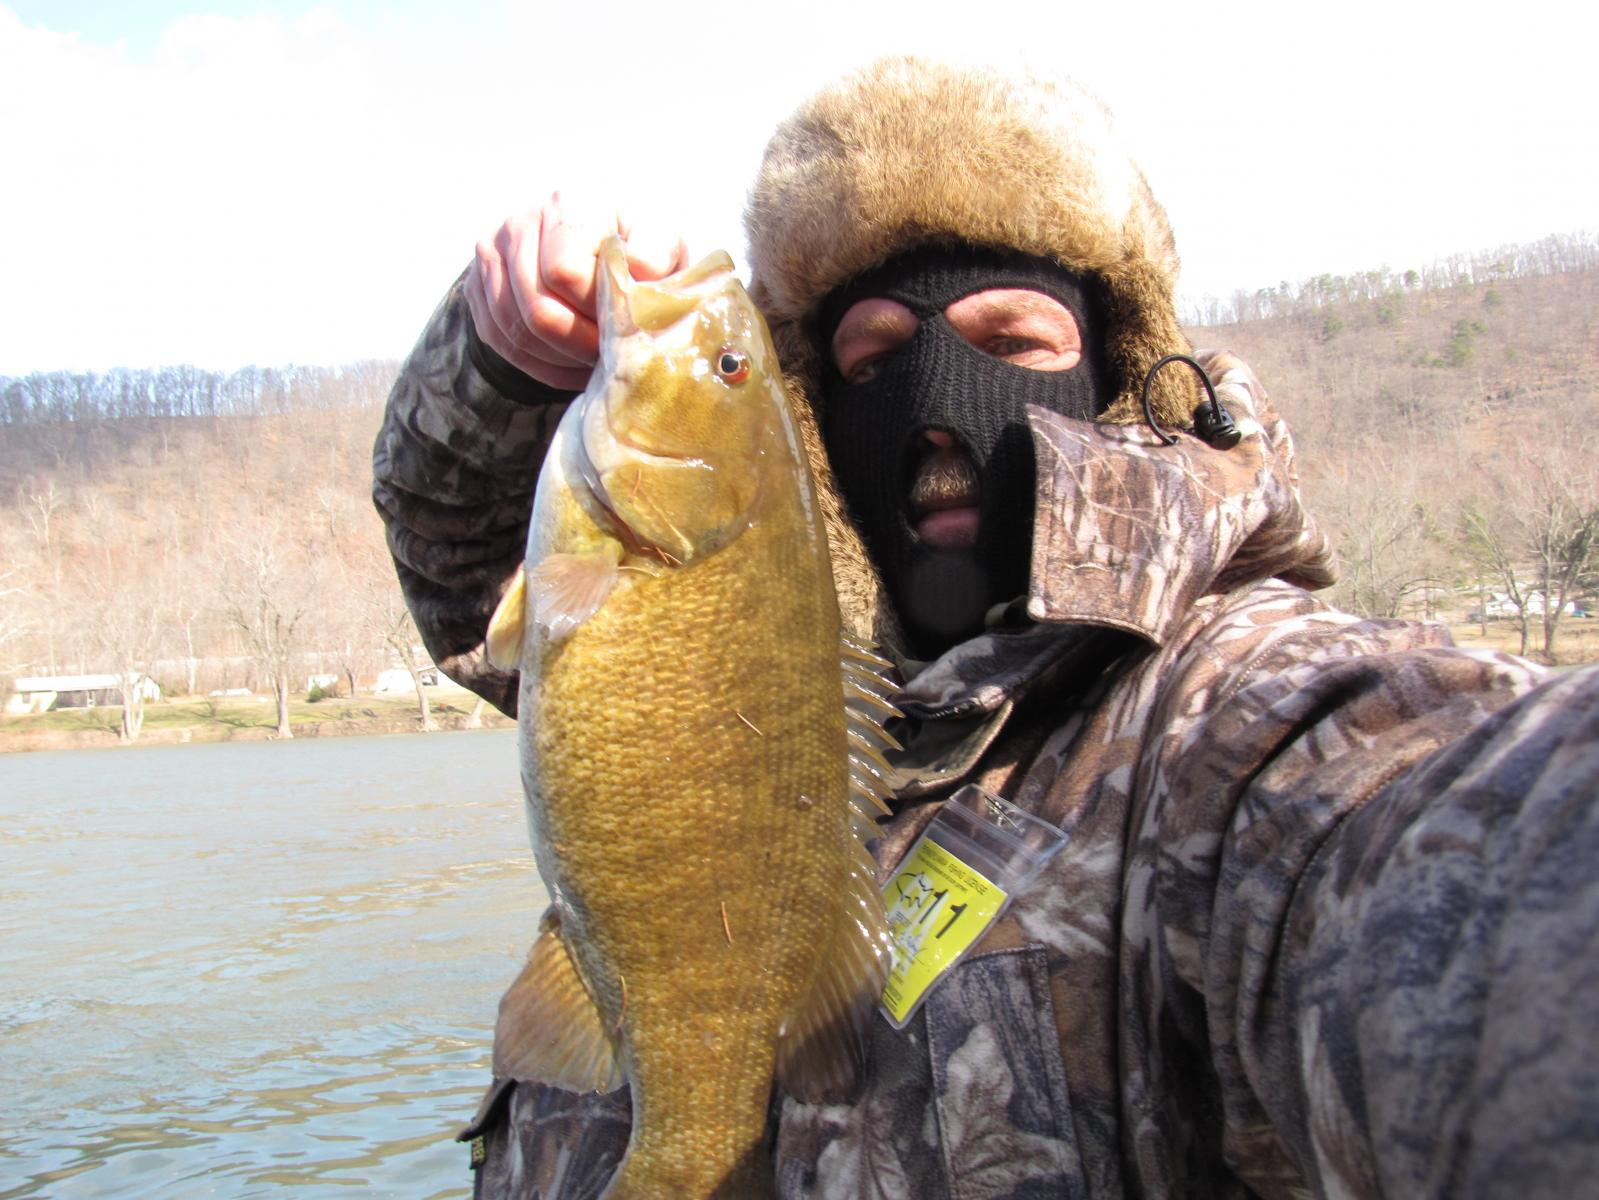 "19"" smallie caught on hand pour, 35 degree water temp,managed to get 20 total"